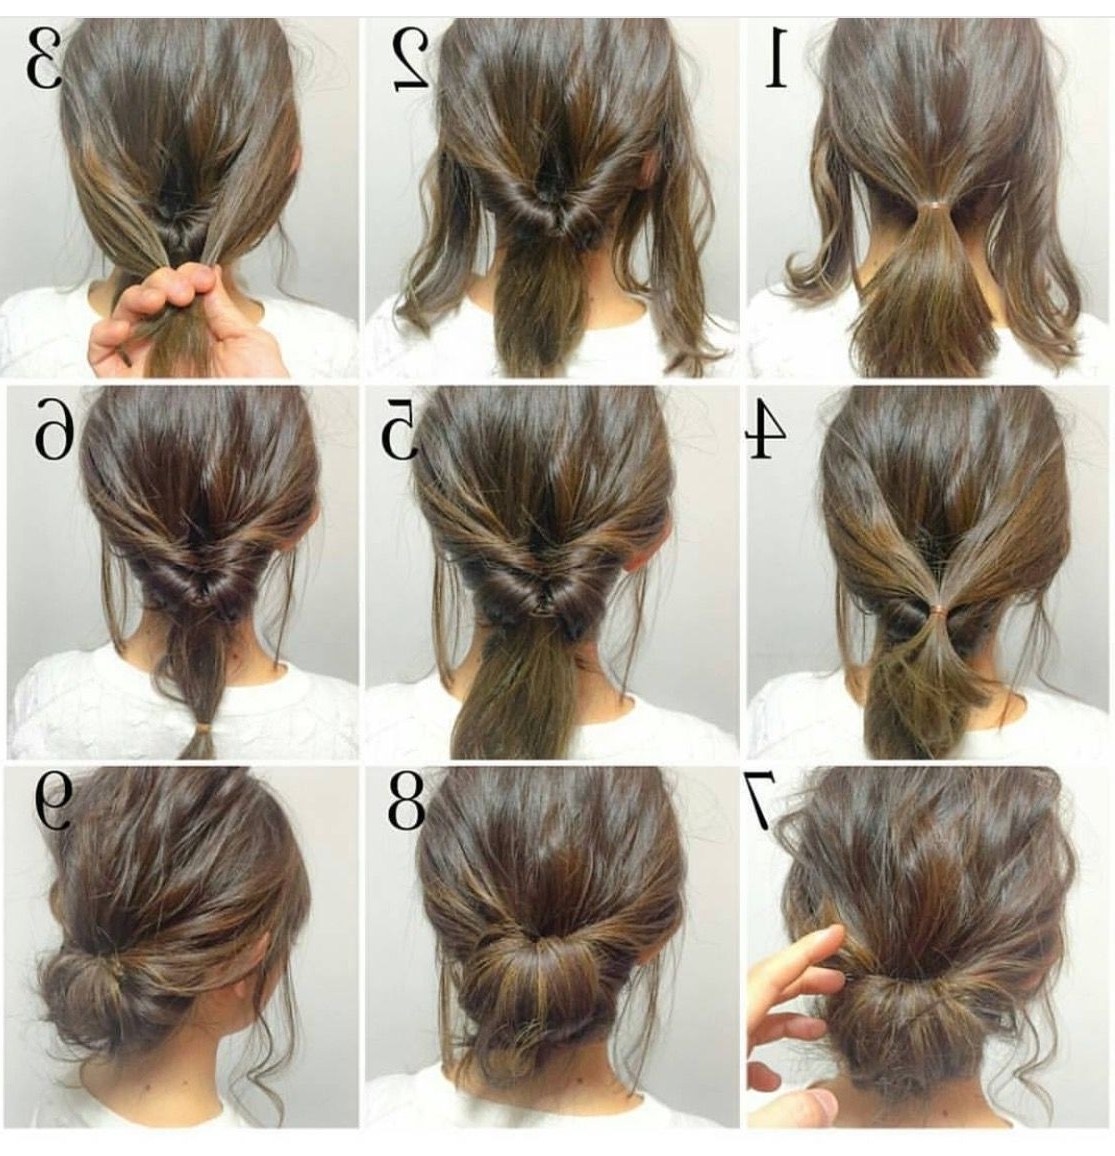 4 Messy Updos For Long Hair | Hairz | Pinterest | Updos, Hair Style Throughout Easy Hair Updos For Long Hair (View 2 of 15)